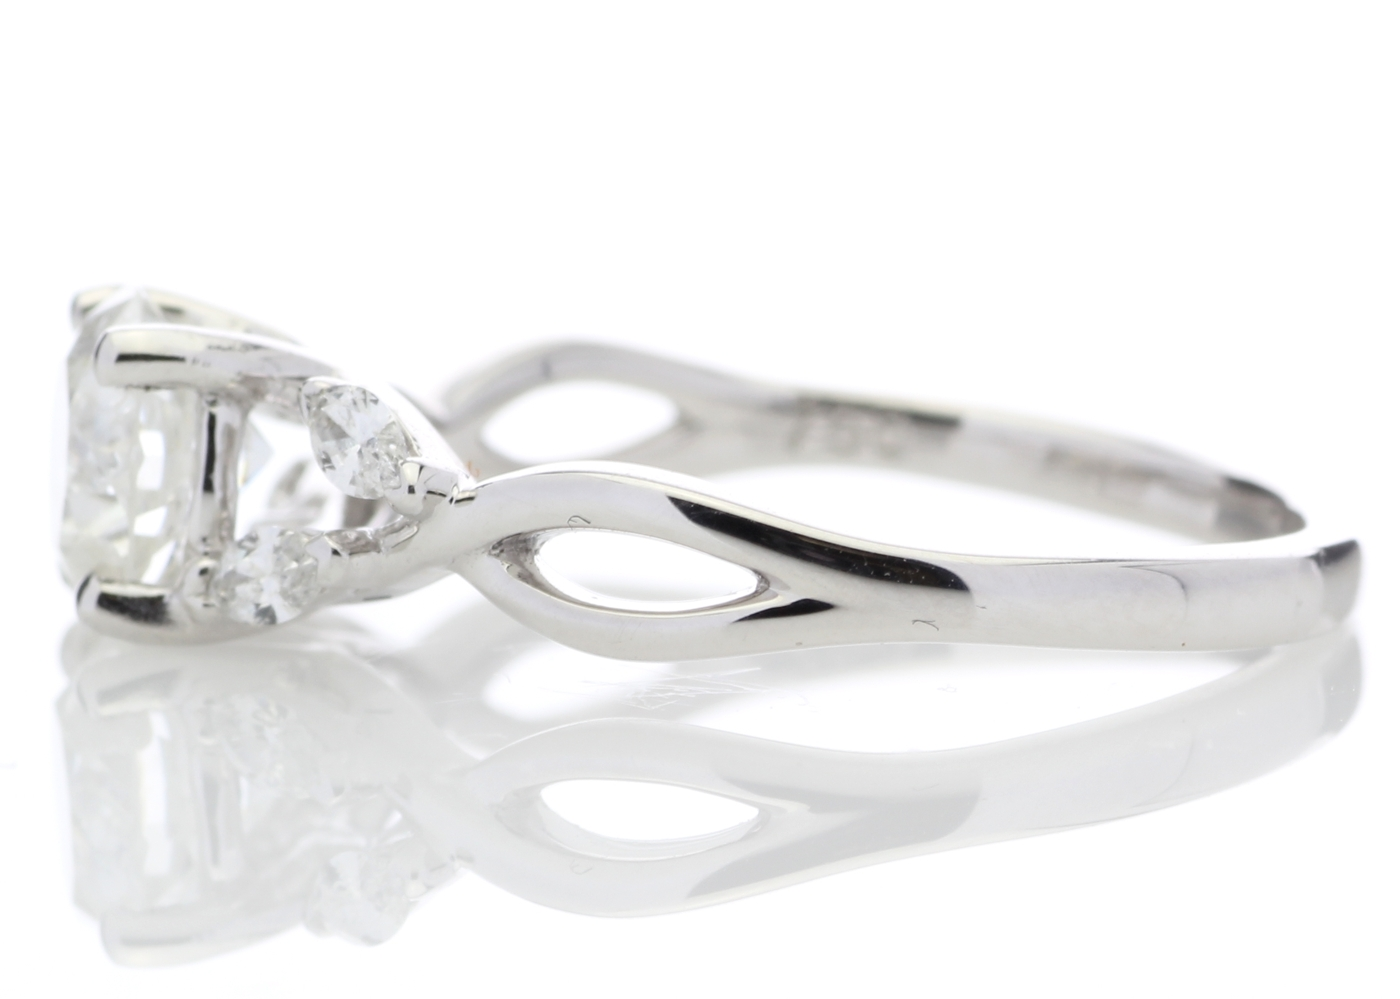 Lot 22 - 18ct White Gold Diamond Ring With Leaf Shoulders 1.07 Carats